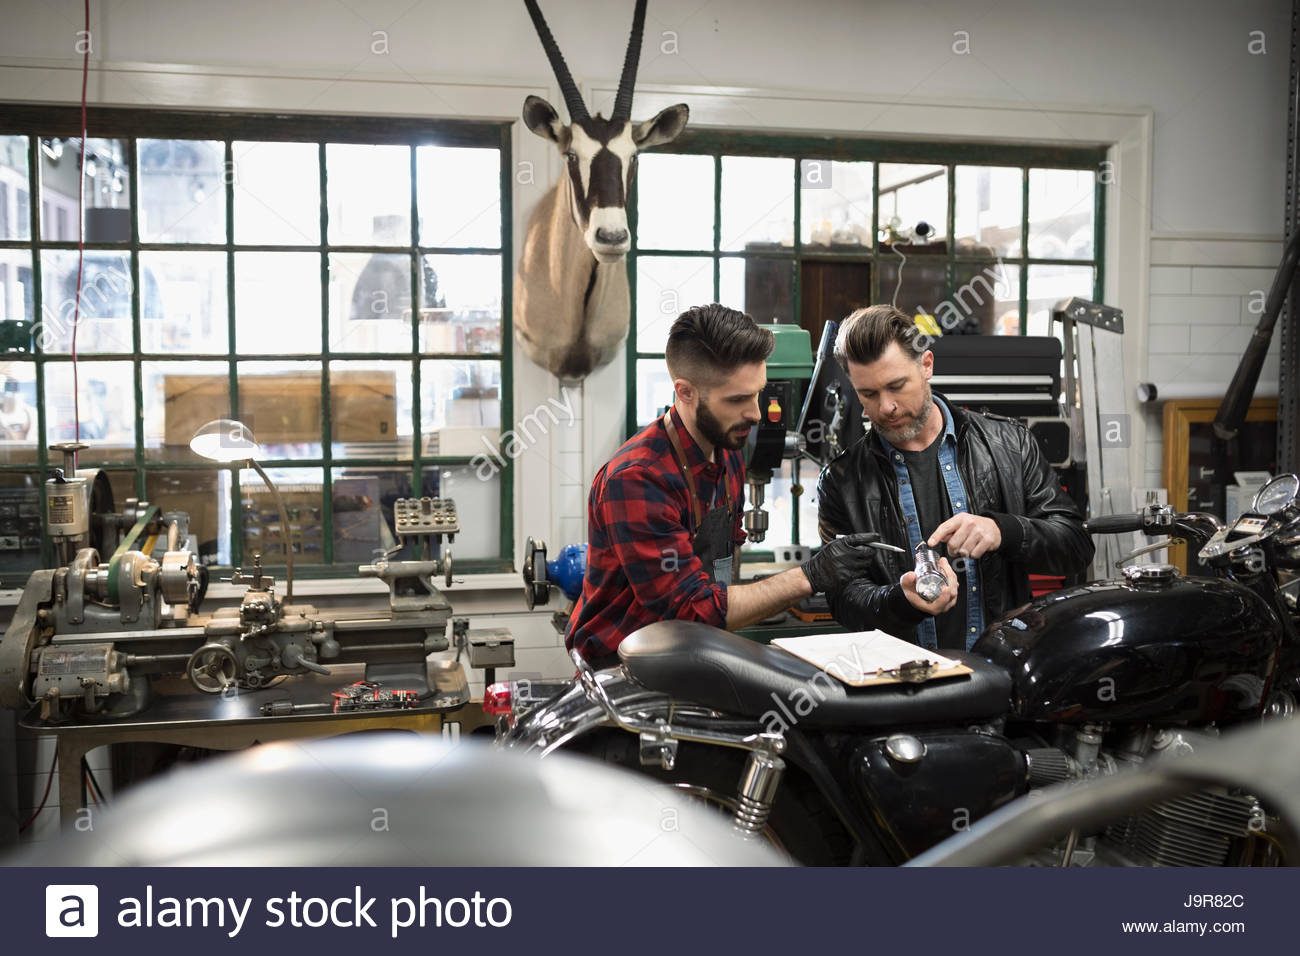 Motorcycle mechanics with clipboard examining part, fixing motorcycle in auto repair shop - Stock Image